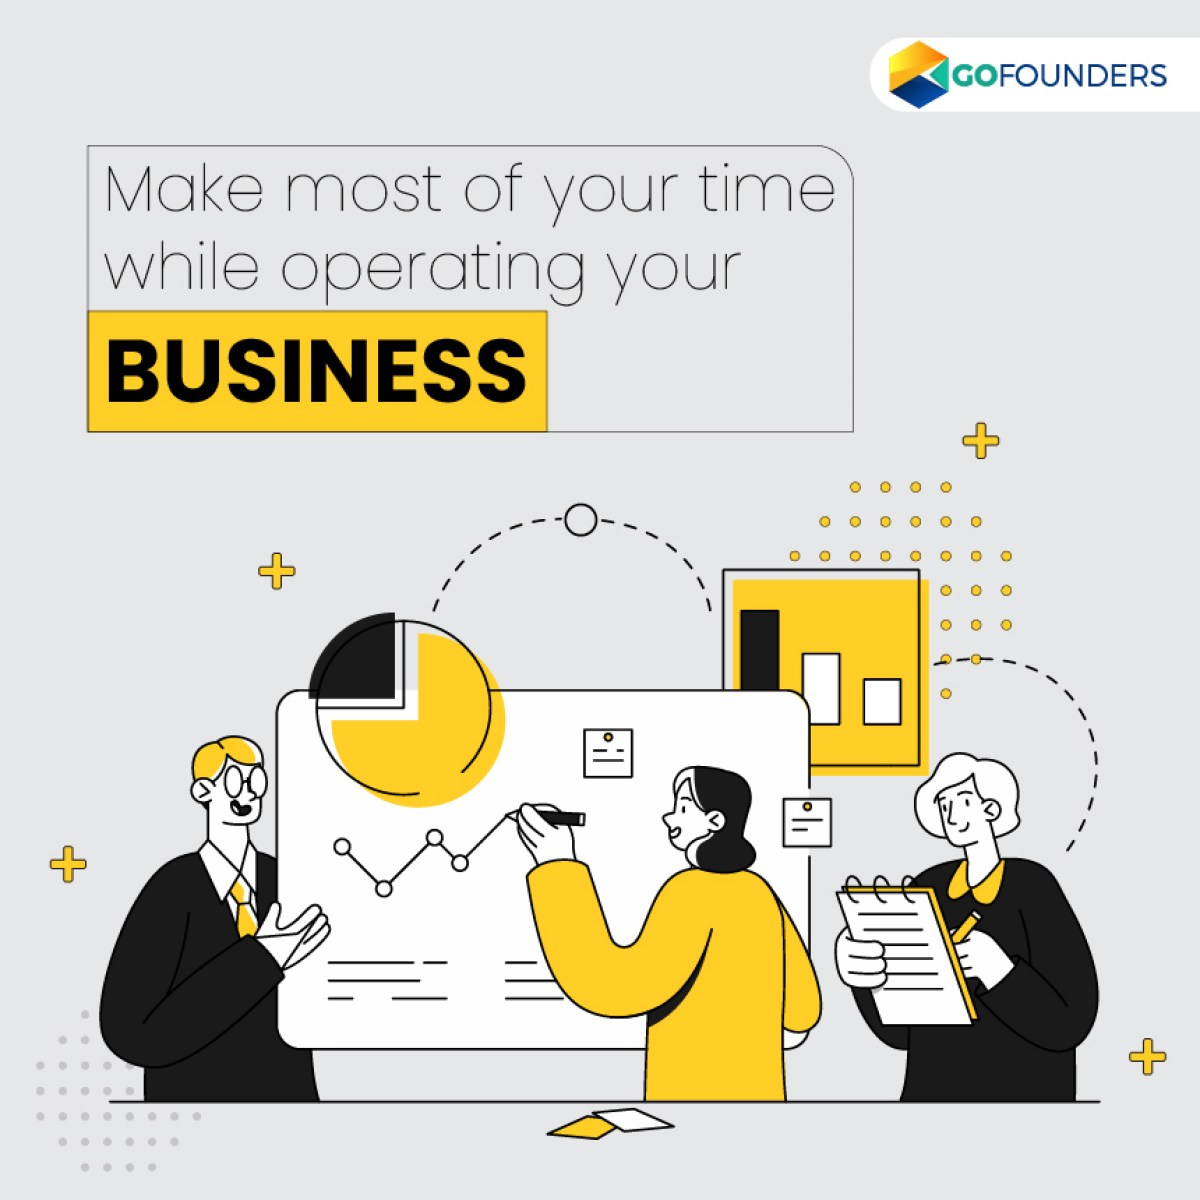 What's the optimum time that you are expected to spend on your business? Or, is there any specific time window that you have to work within to achieve your business goals? These are a few of the common questions that people often get stuck with.